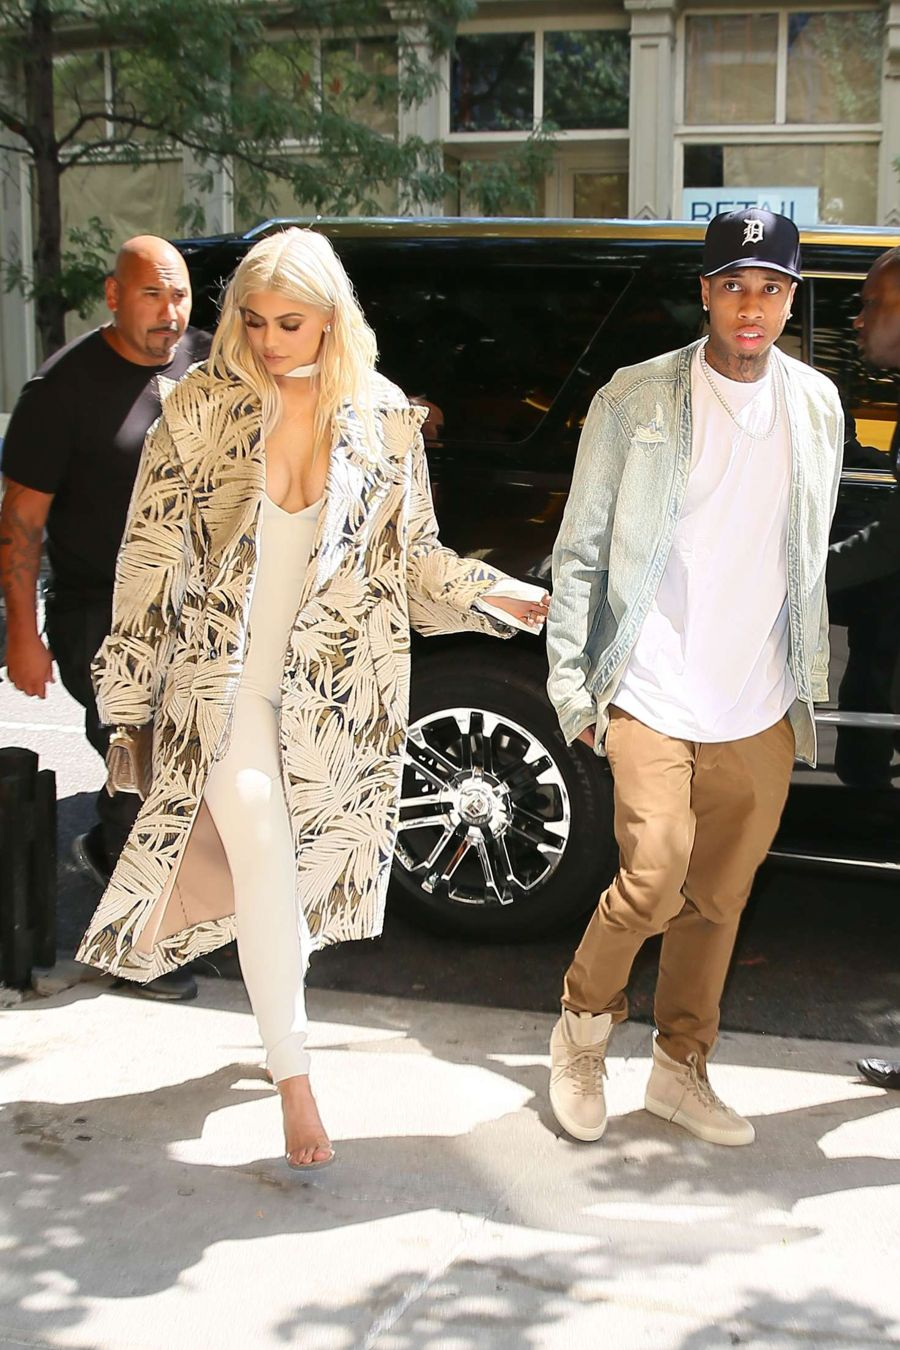 Kylie Jenner and Tyga out in New York